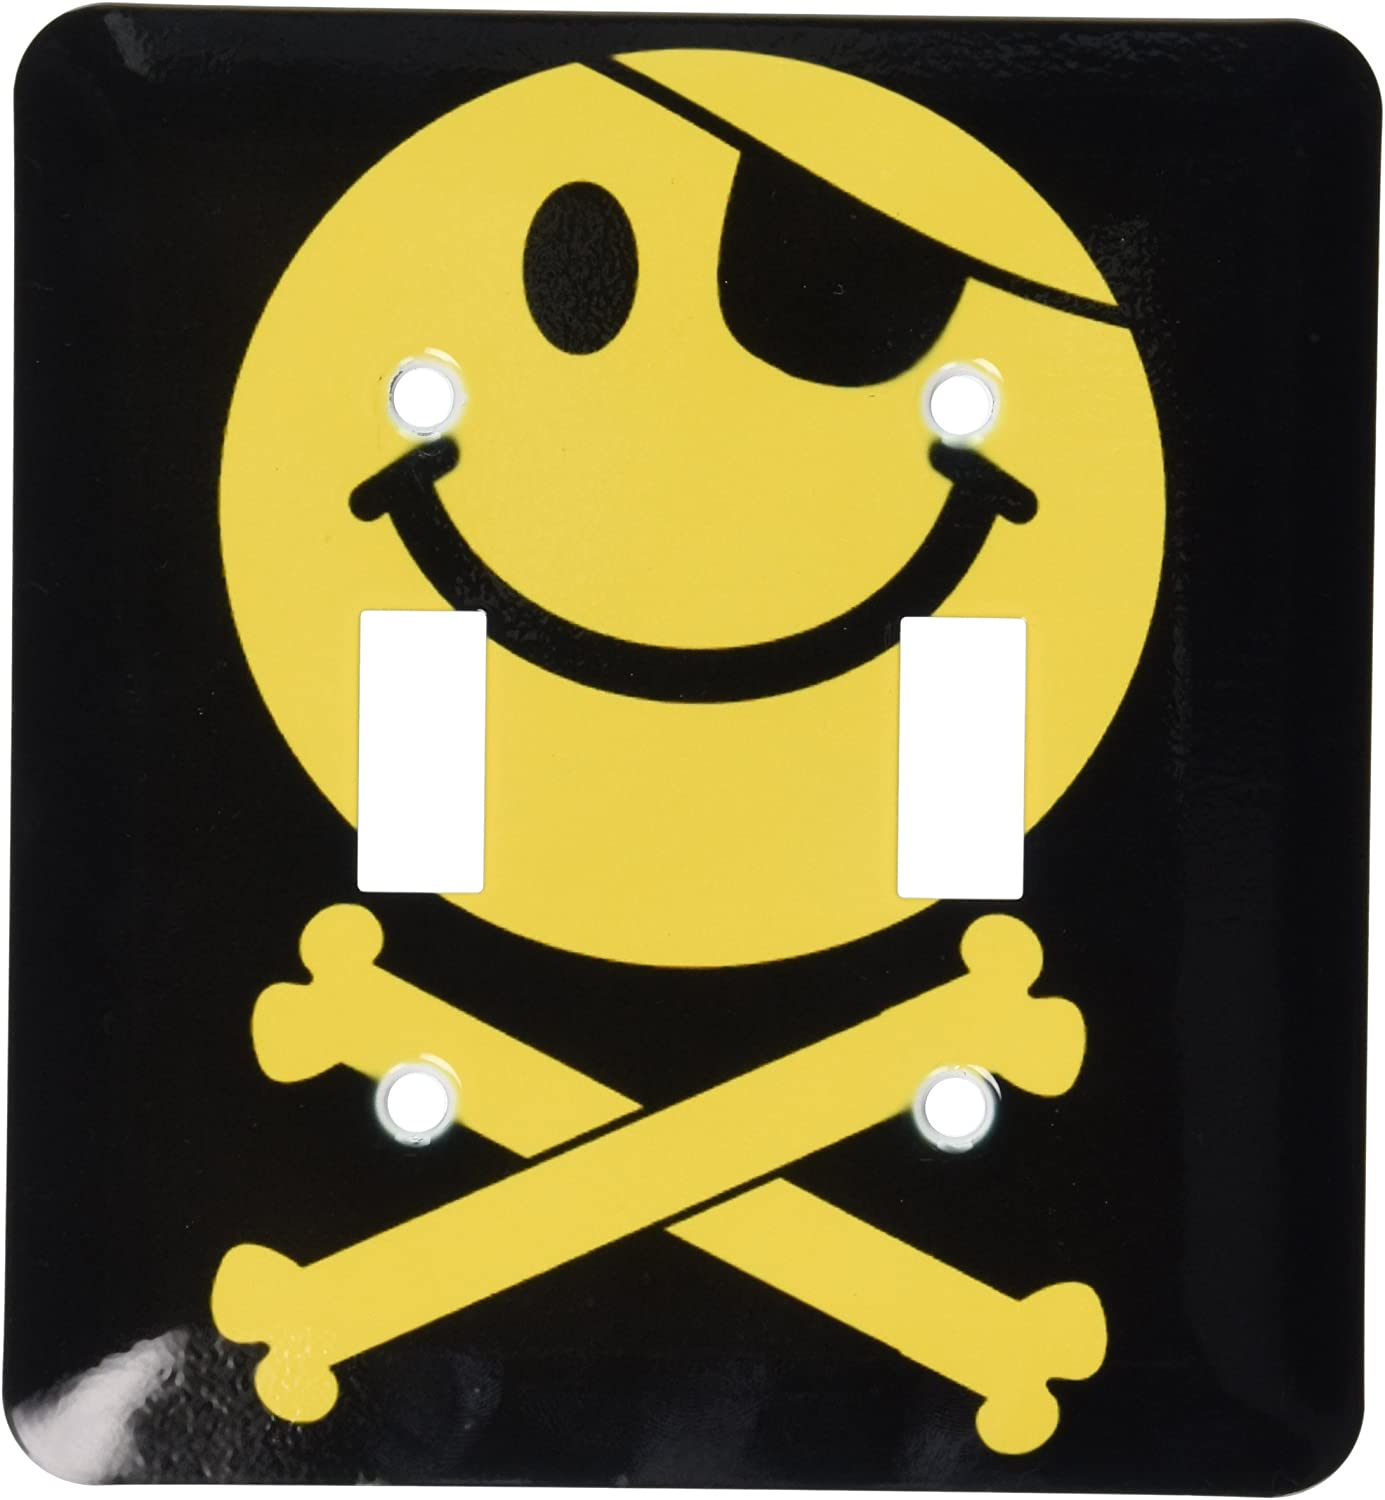 3drose Lsp 76648 2 Pirate Smiley Face Yellow Jolly Roger Flag Skull And Crossbones Smilie With Eye Patch Double Toggle Switch Switch Plates Amazon Com